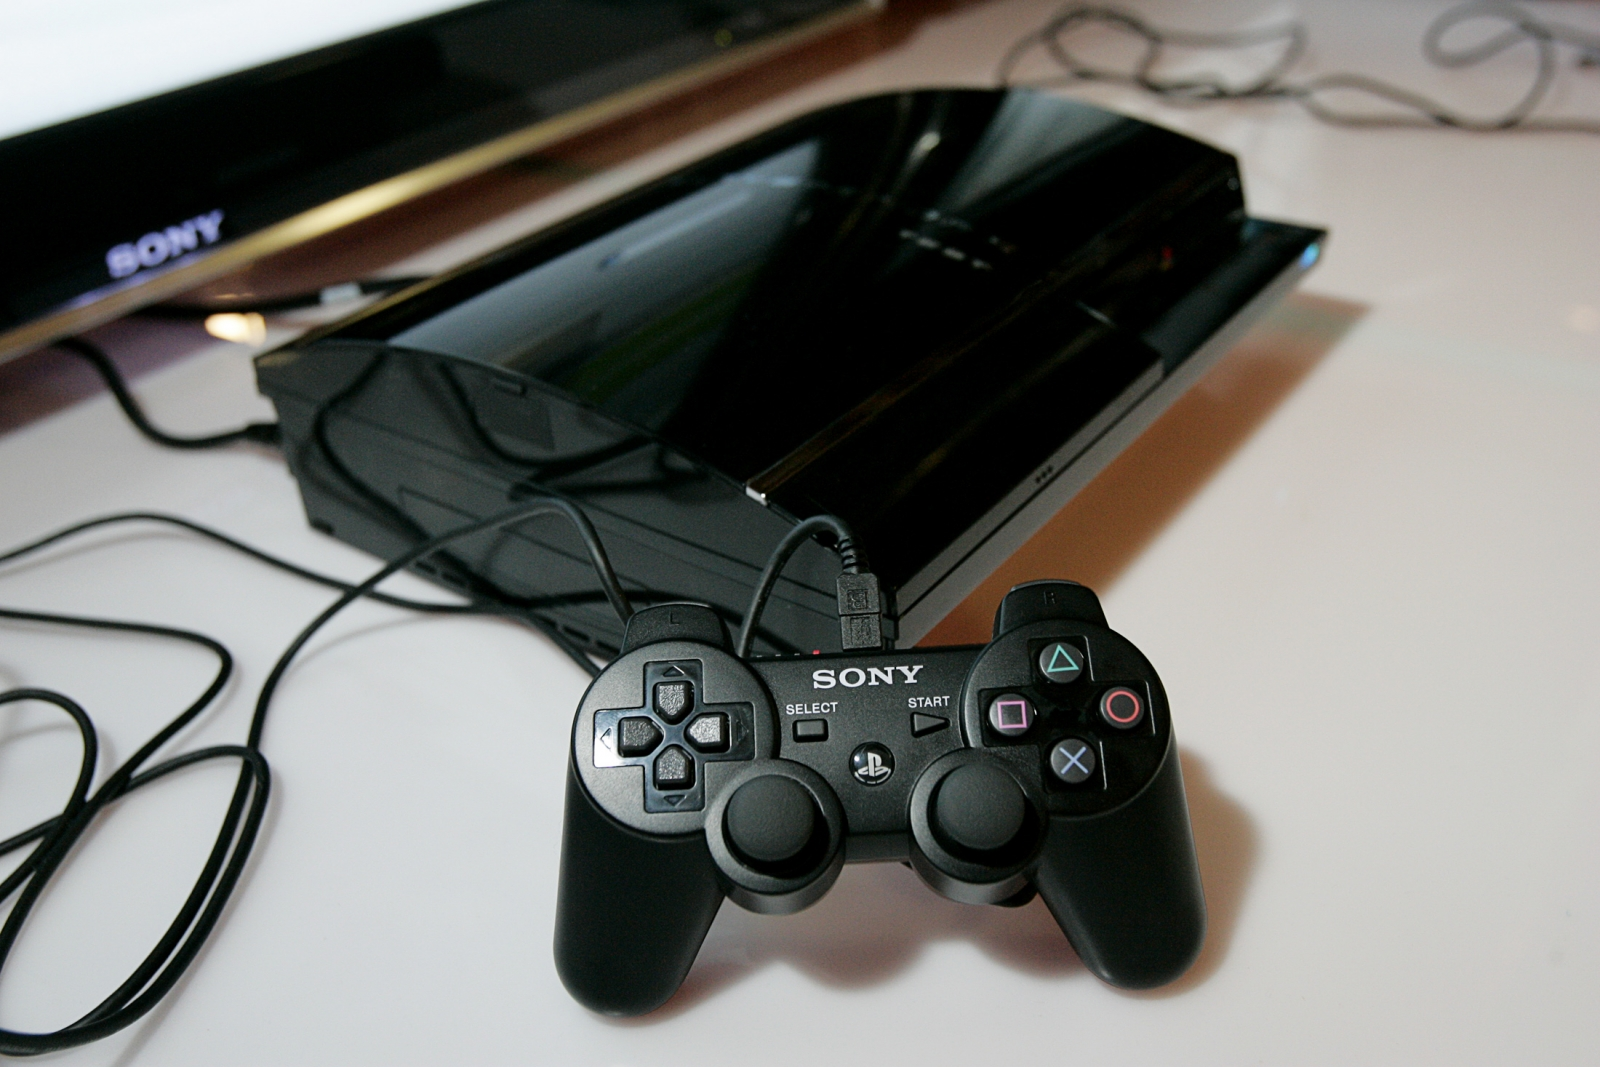 The original launch model of the PlayStation3